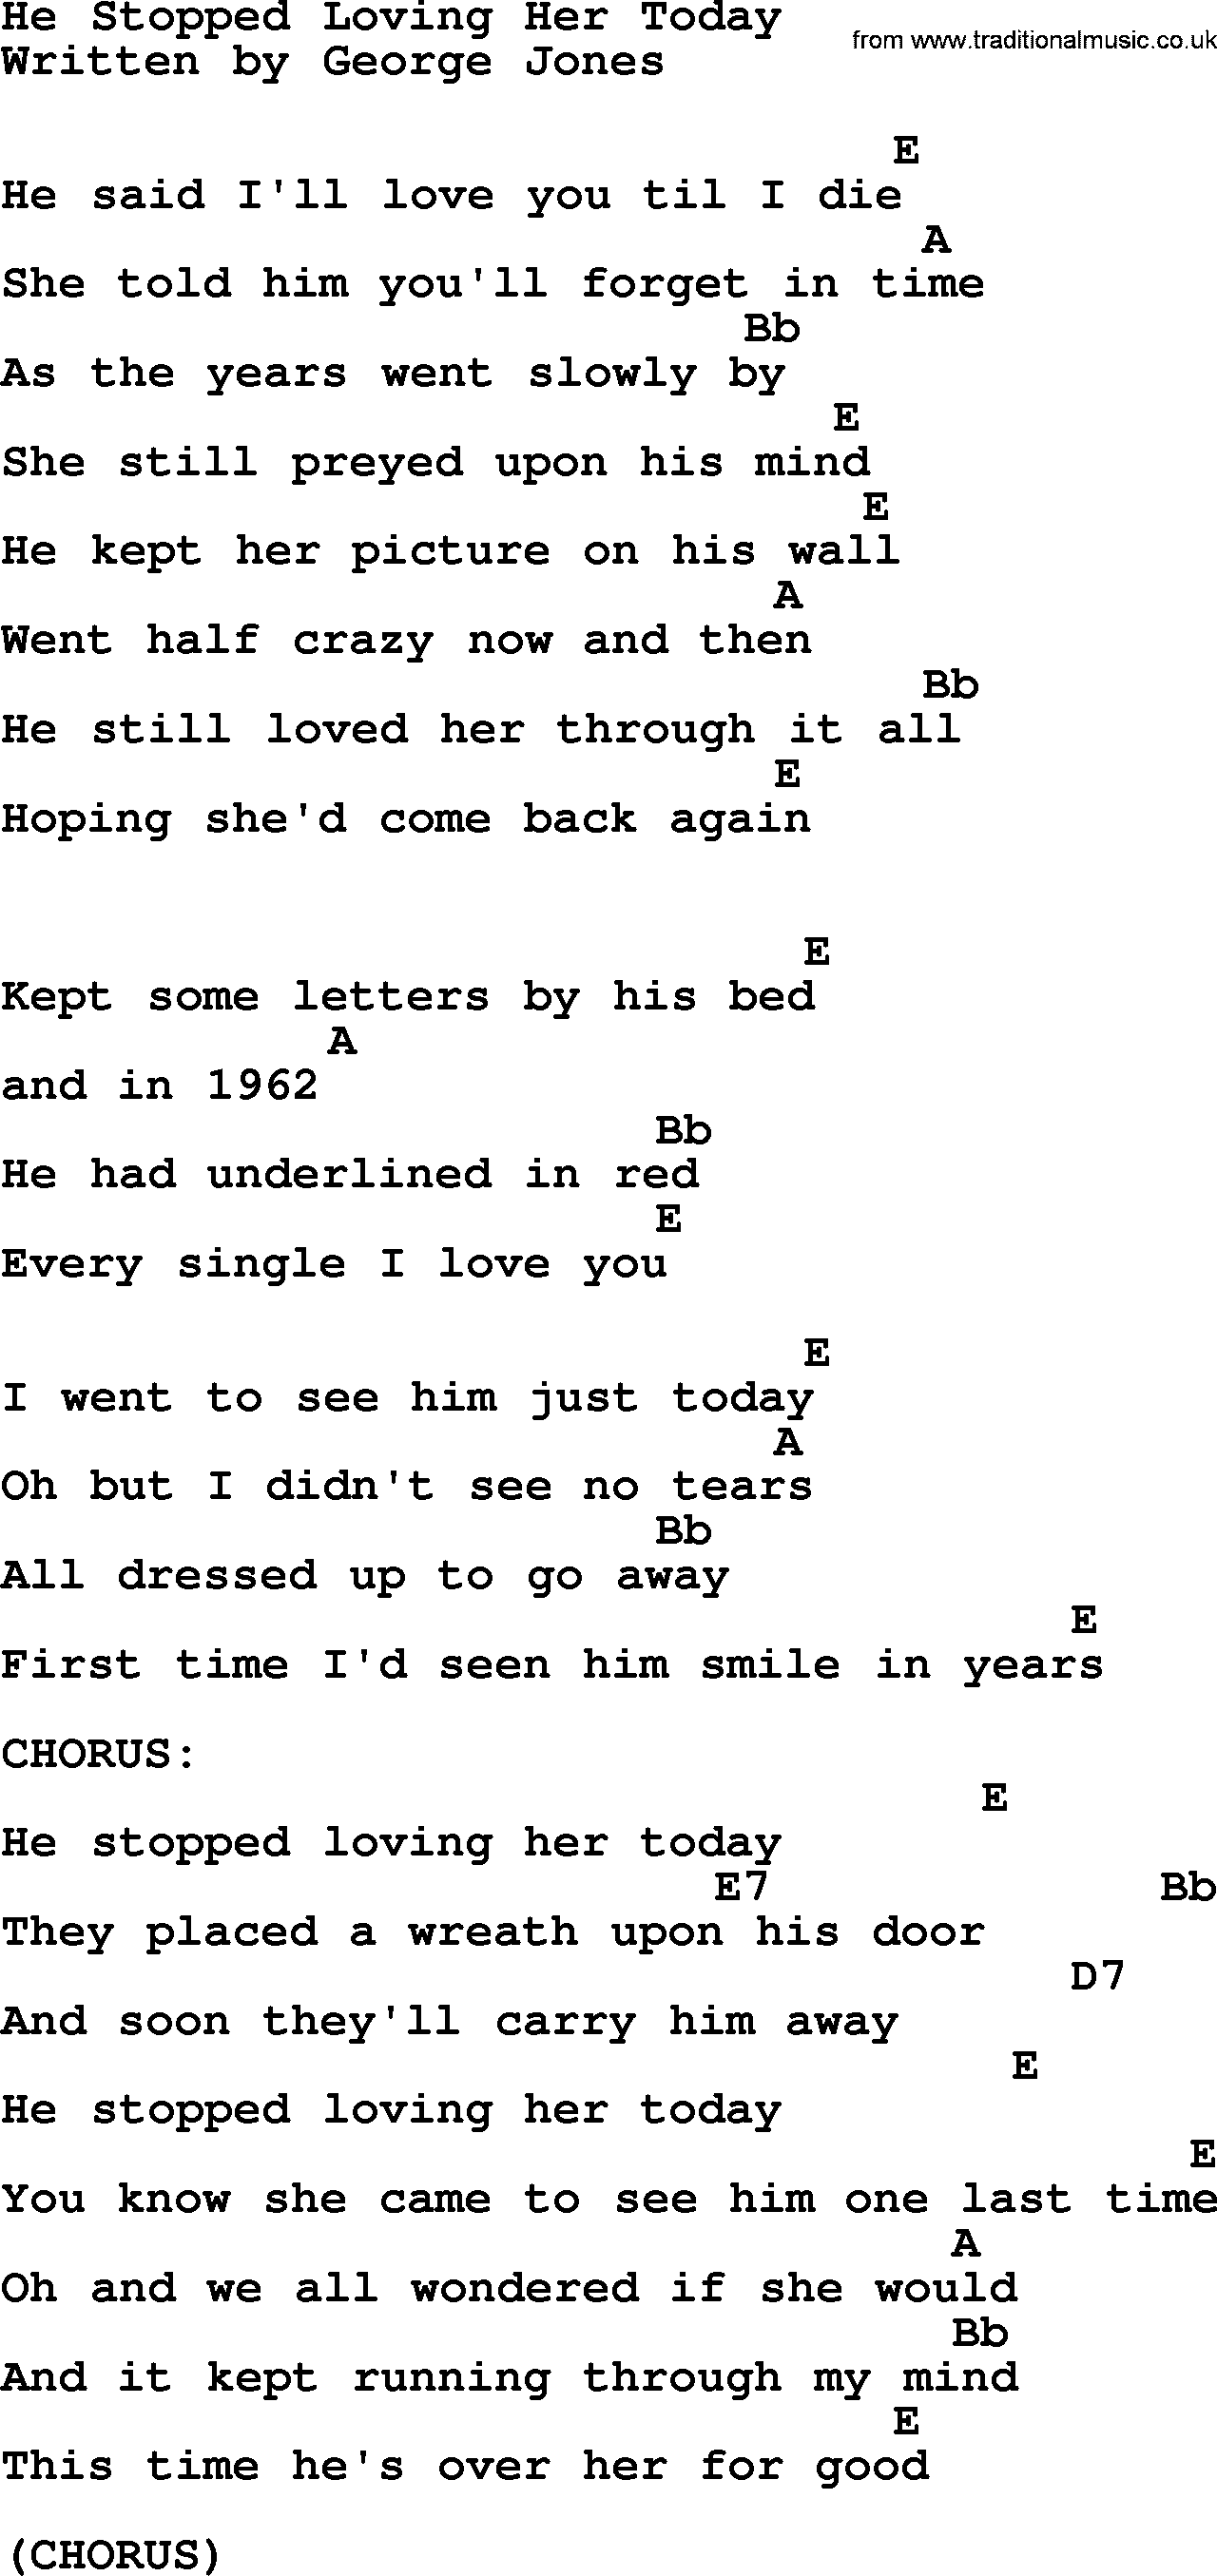 Johnny Cash song He Stopped Loving Her Today, lyrics and chords